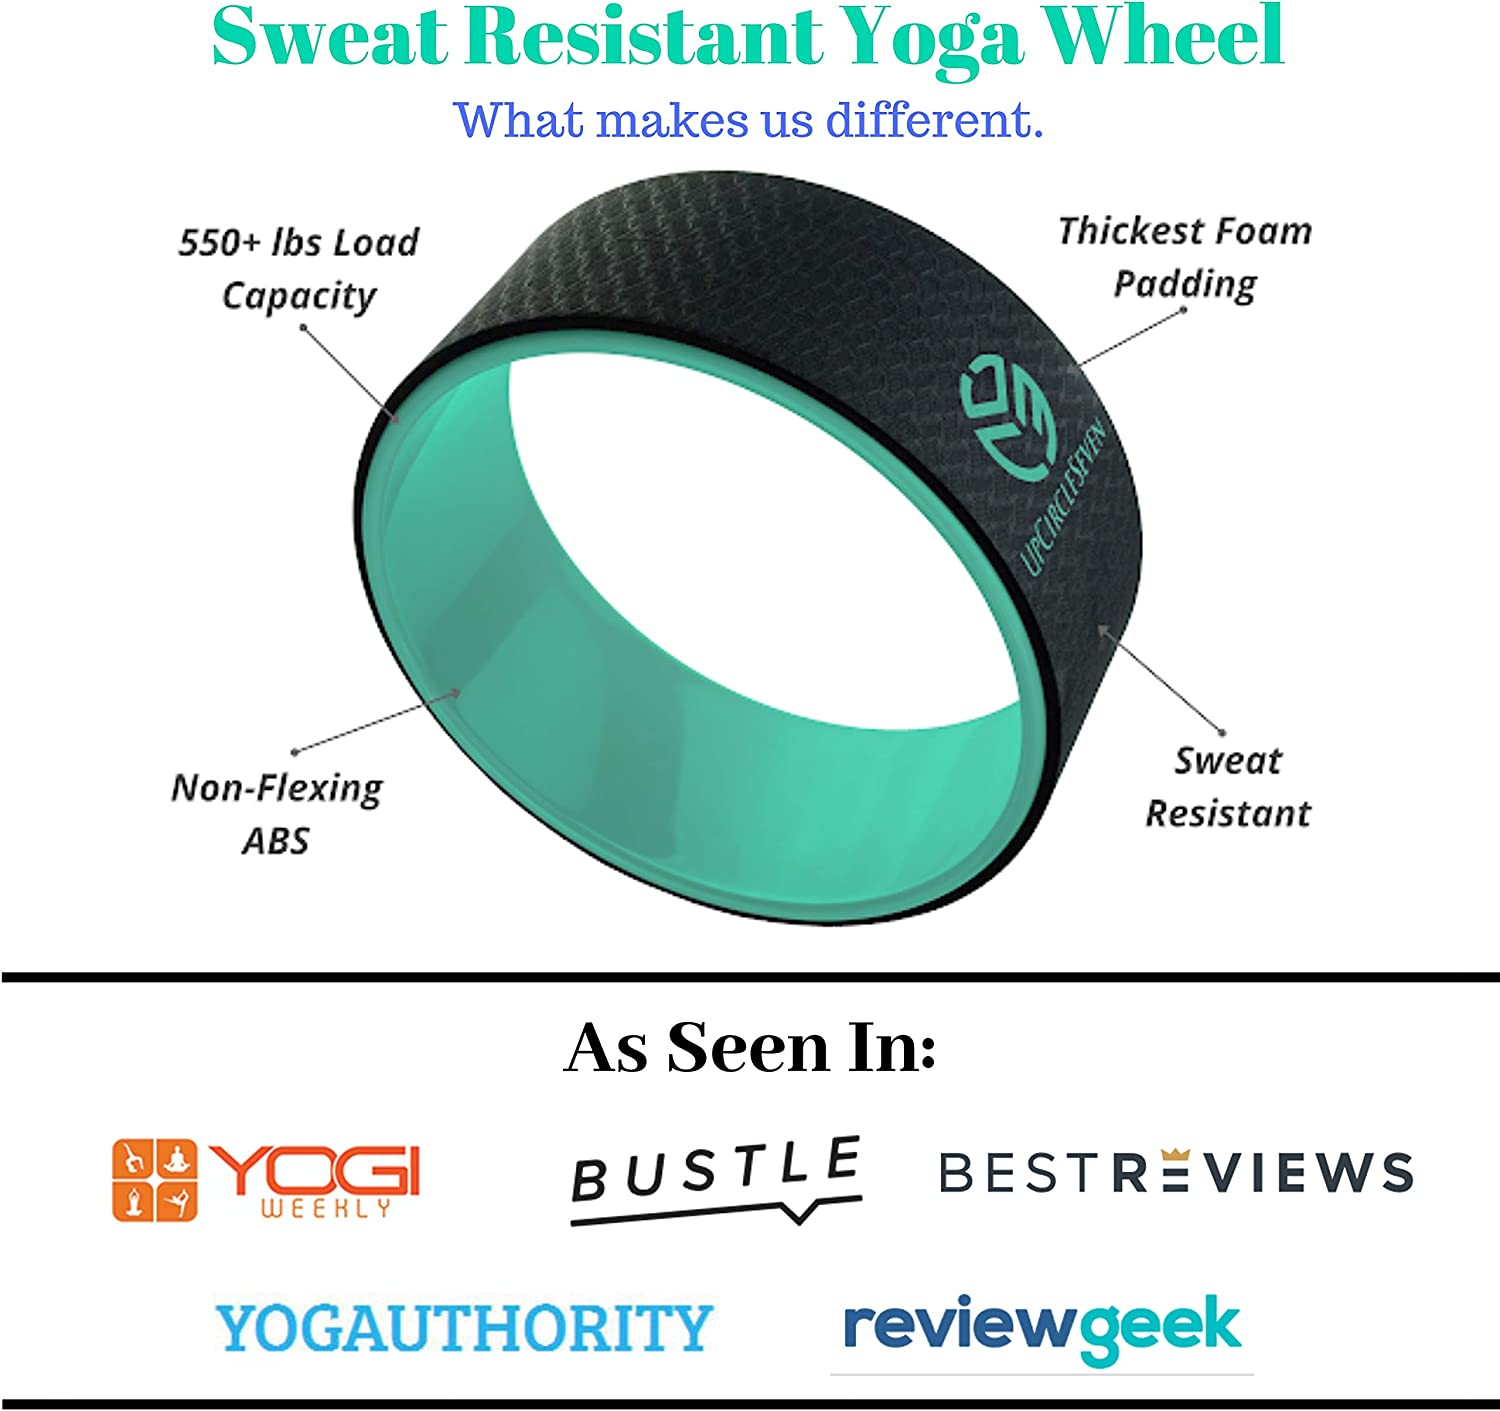 UpCircleSeven Yoga Wheel Set - Strongest & Most Comfortable Dharma Yoga Prop Wheel, 3 Pack for Back Pain Stretching & Backbends (12, 10, 6 inch) (Cyan) : Sports & Outdoors